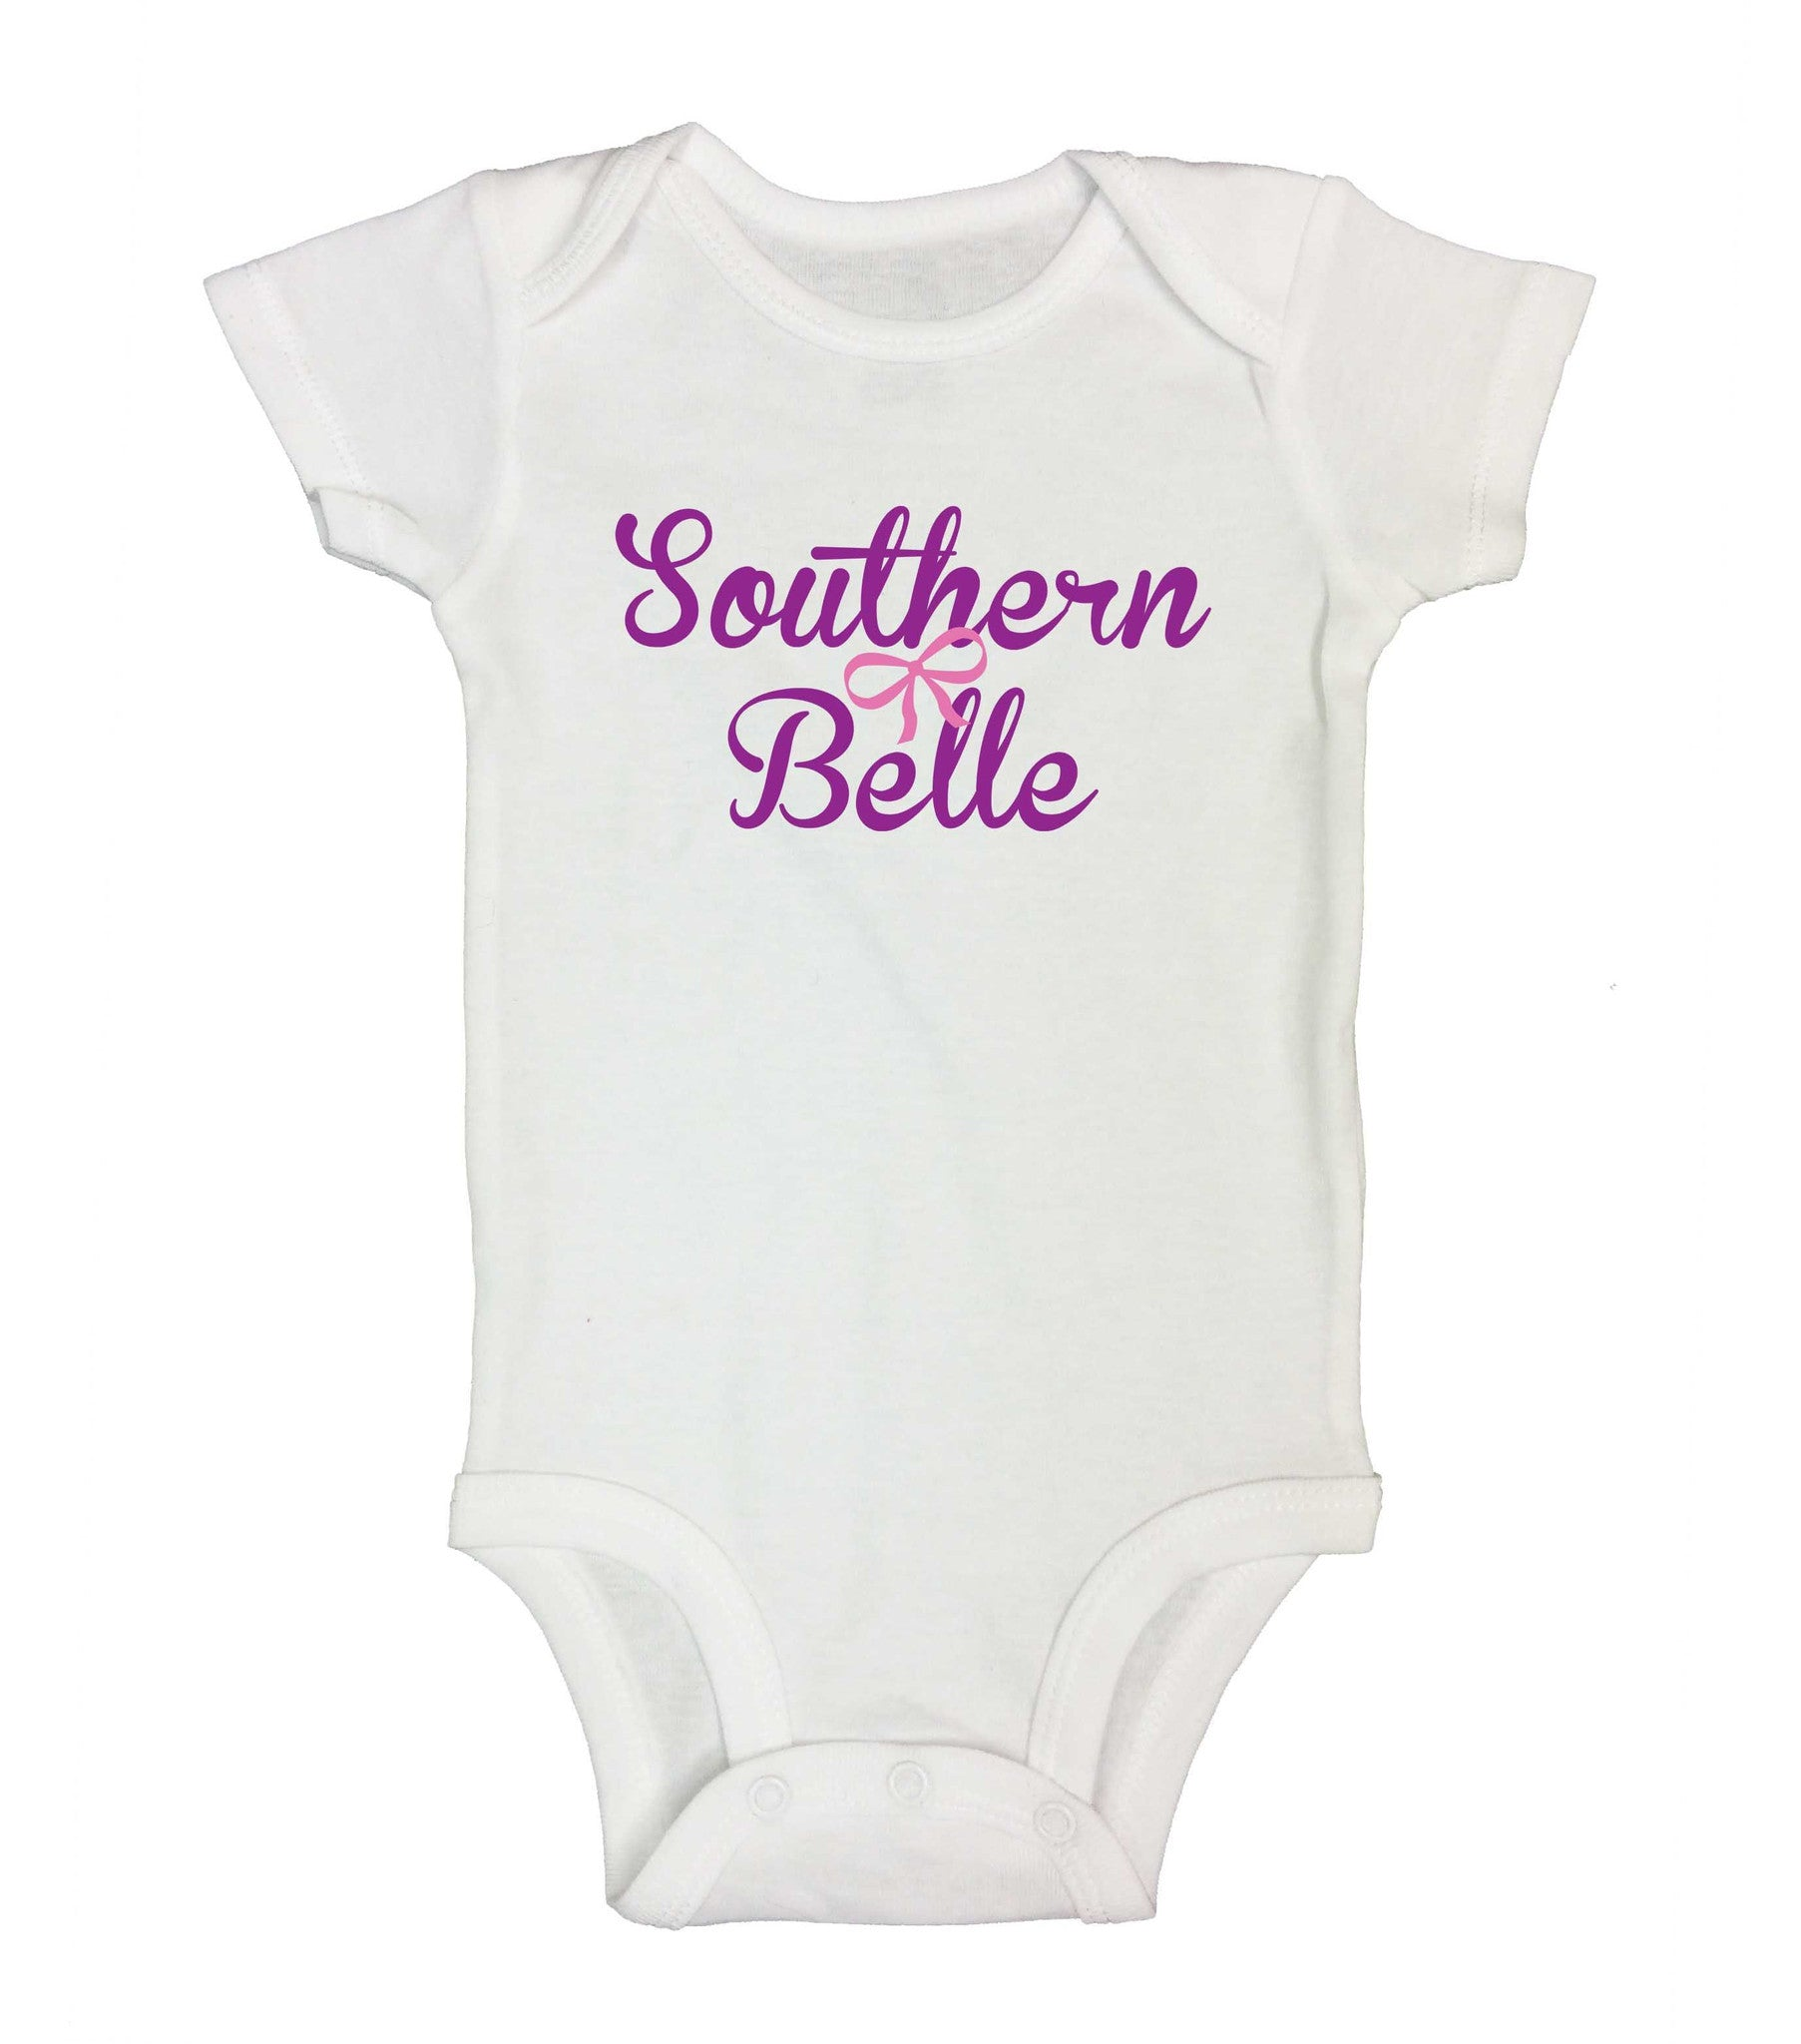 Southern Belle Funny Kids Onesie - 229 - Funny Shirts Tank Tops Burnouts and Triblends  - 2